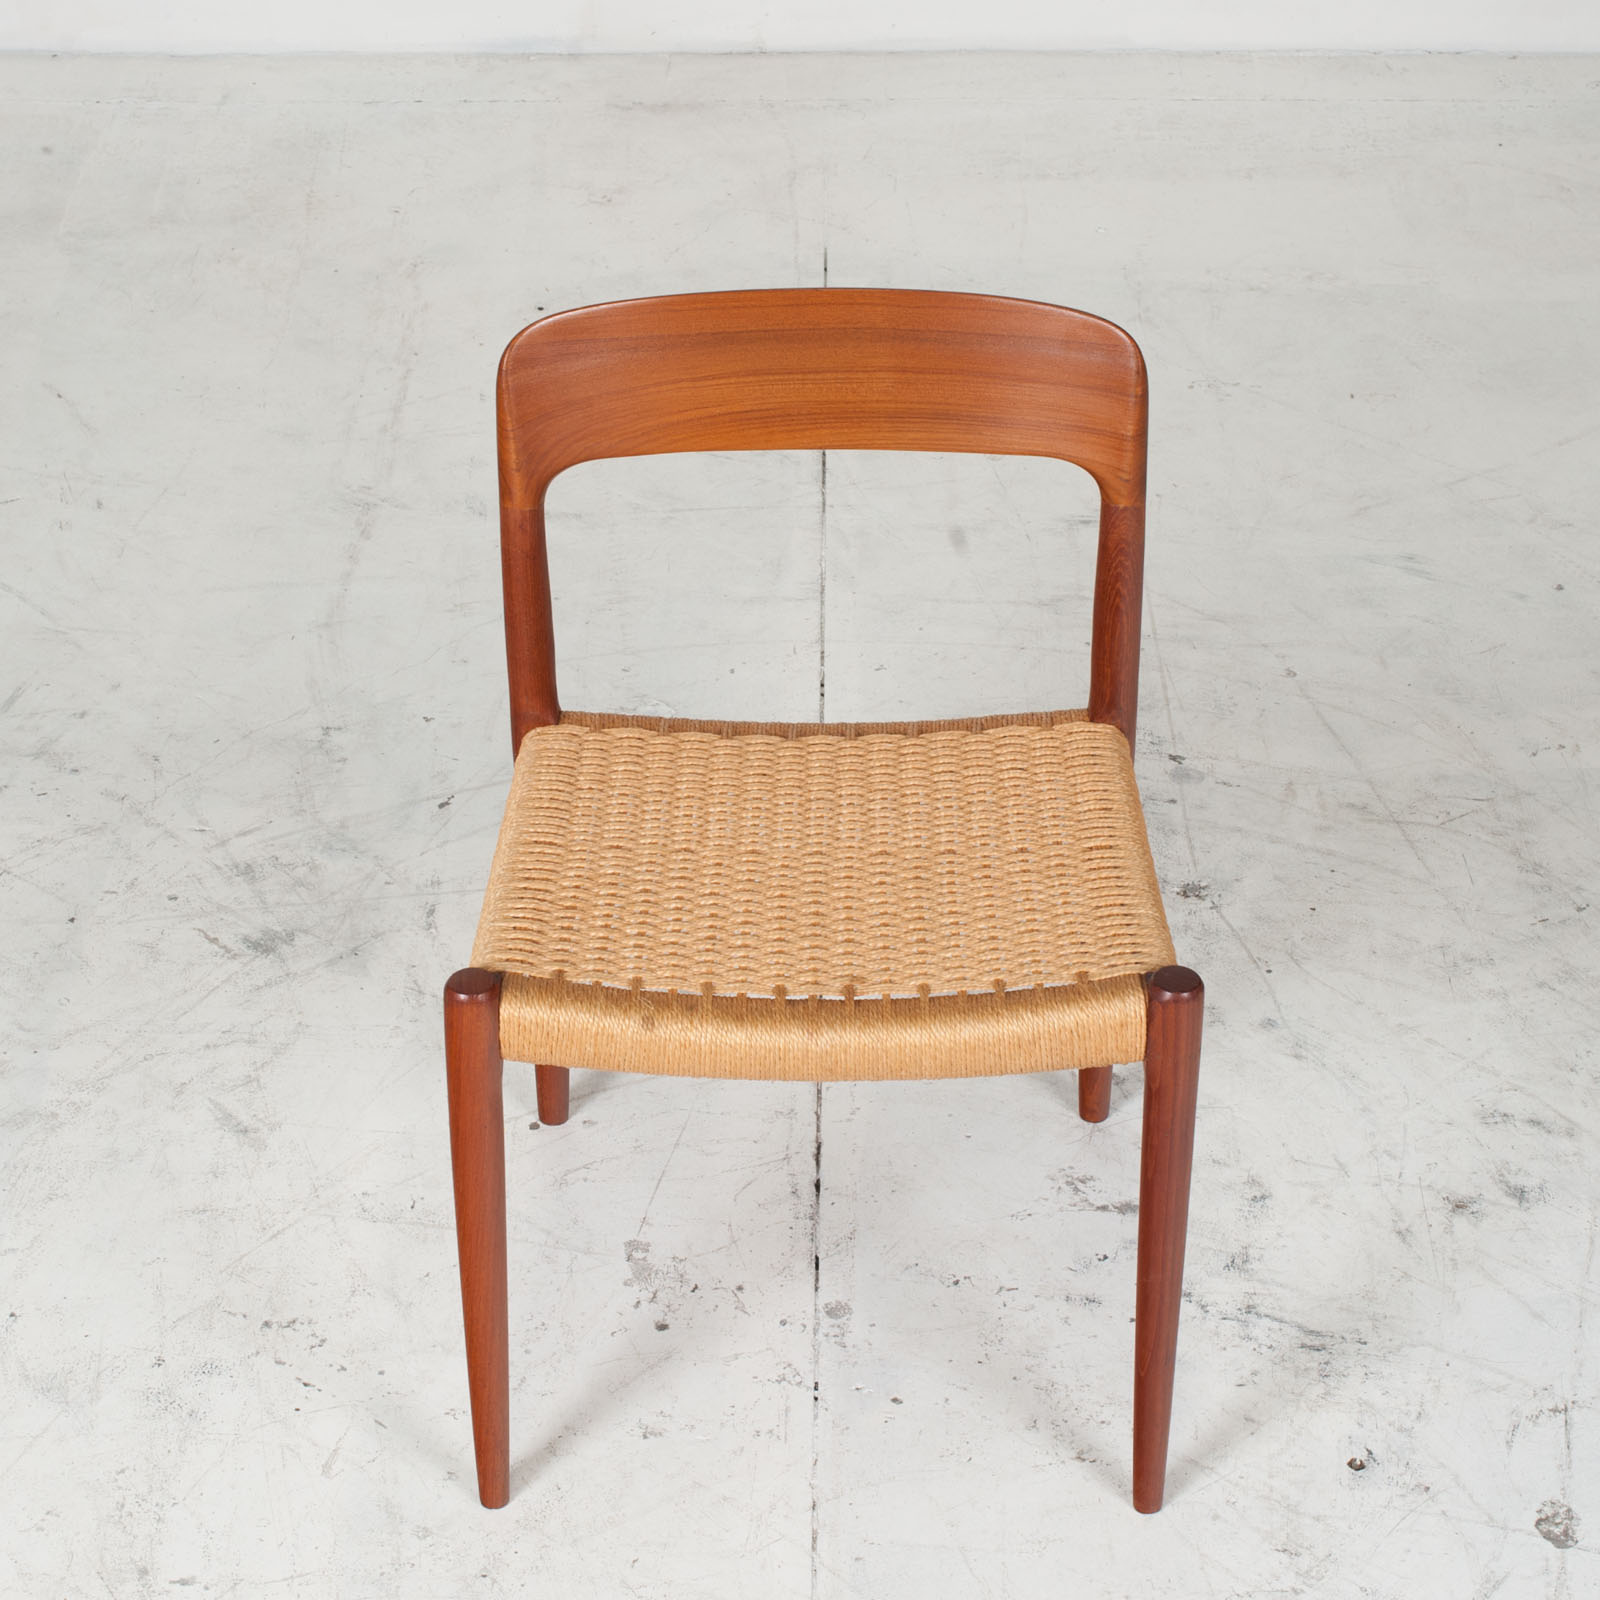 Set Of 6 Model 75 Dining Chairs By J. L. Moller In Teak And Cord 1960s Denmark 04